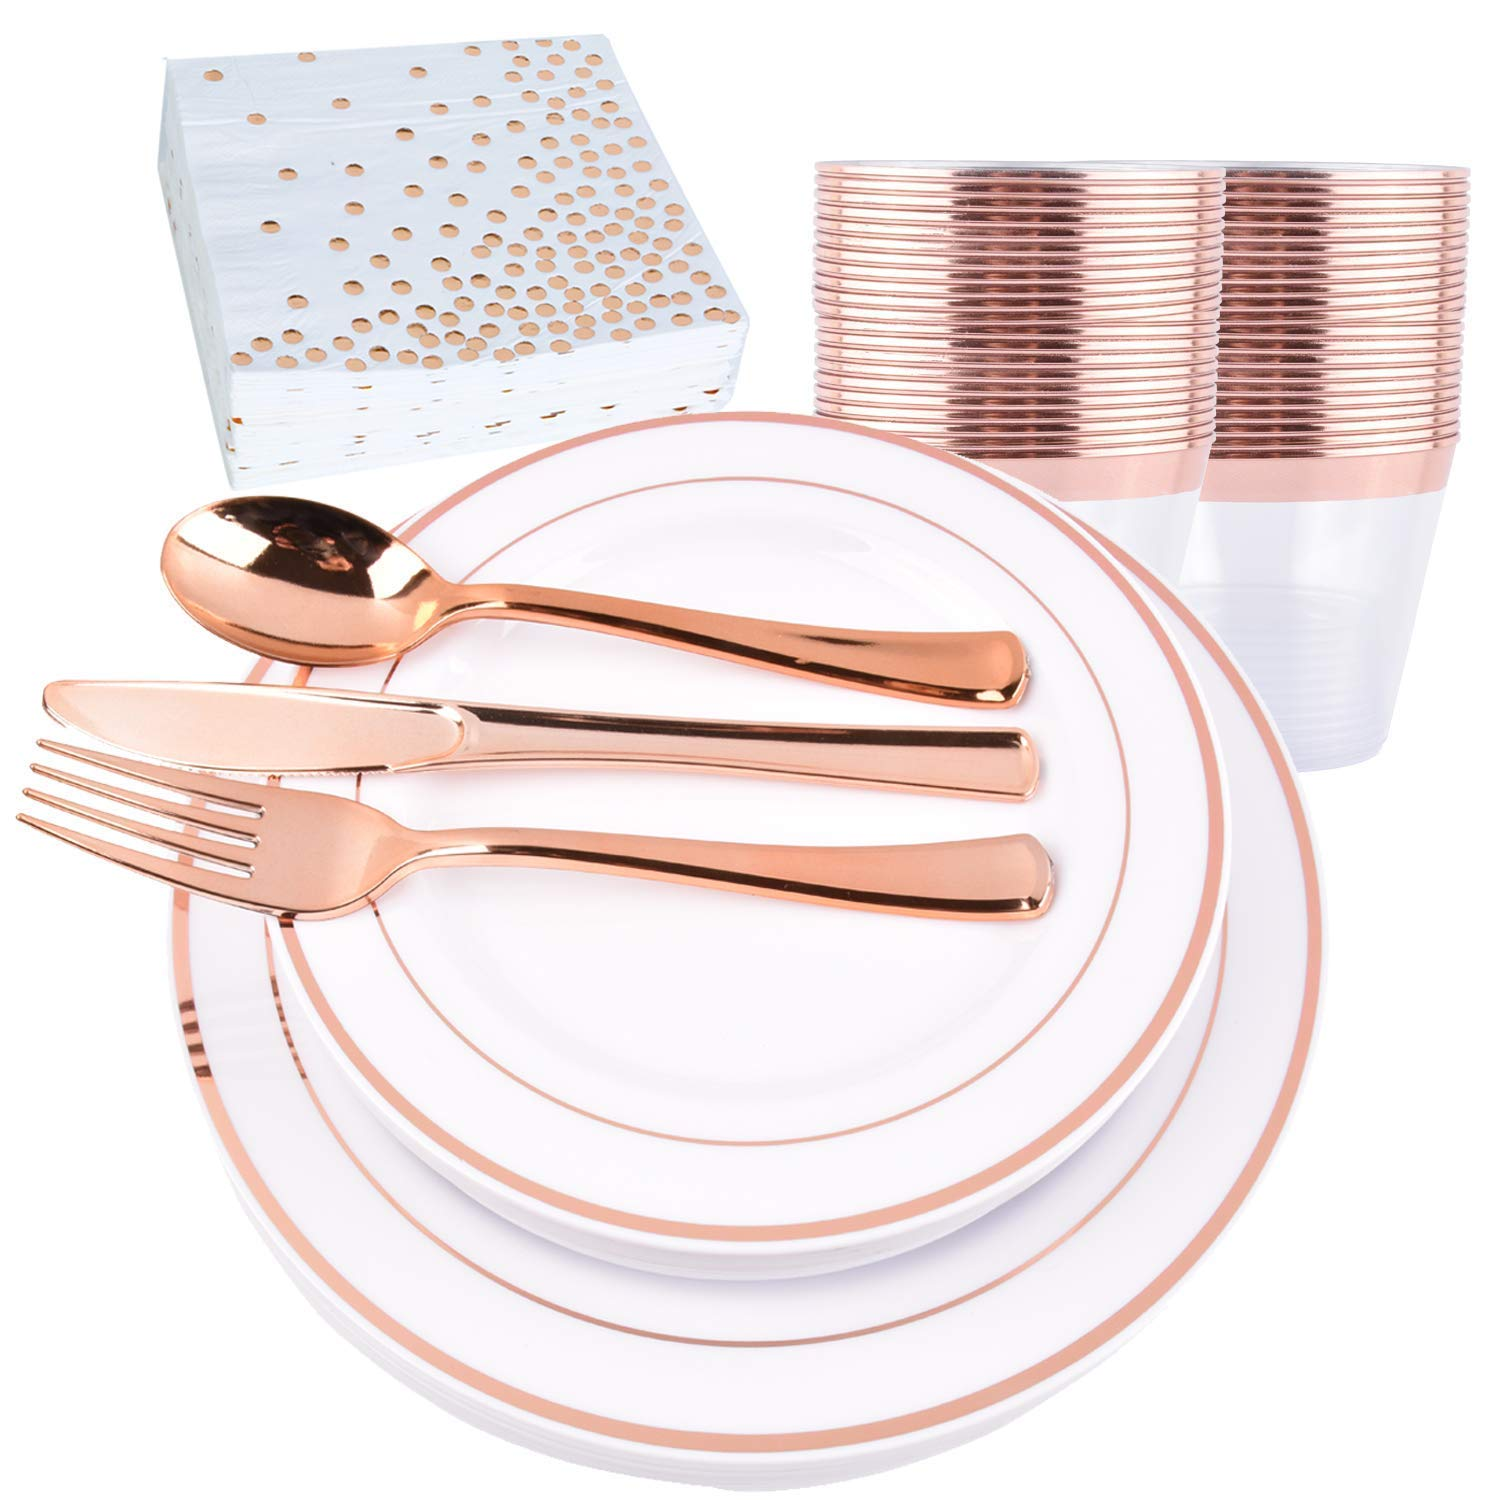 H3 Innovations-200pc Rose Gold Plastic Plates, Rose Gold Silverware, Rose Gold Plates, Rose Gold Cups, Rose Gold Napkins, Rose Gold Straws, Rose Gold Disposable Dinnerware by H3 Innovations (Image #2)